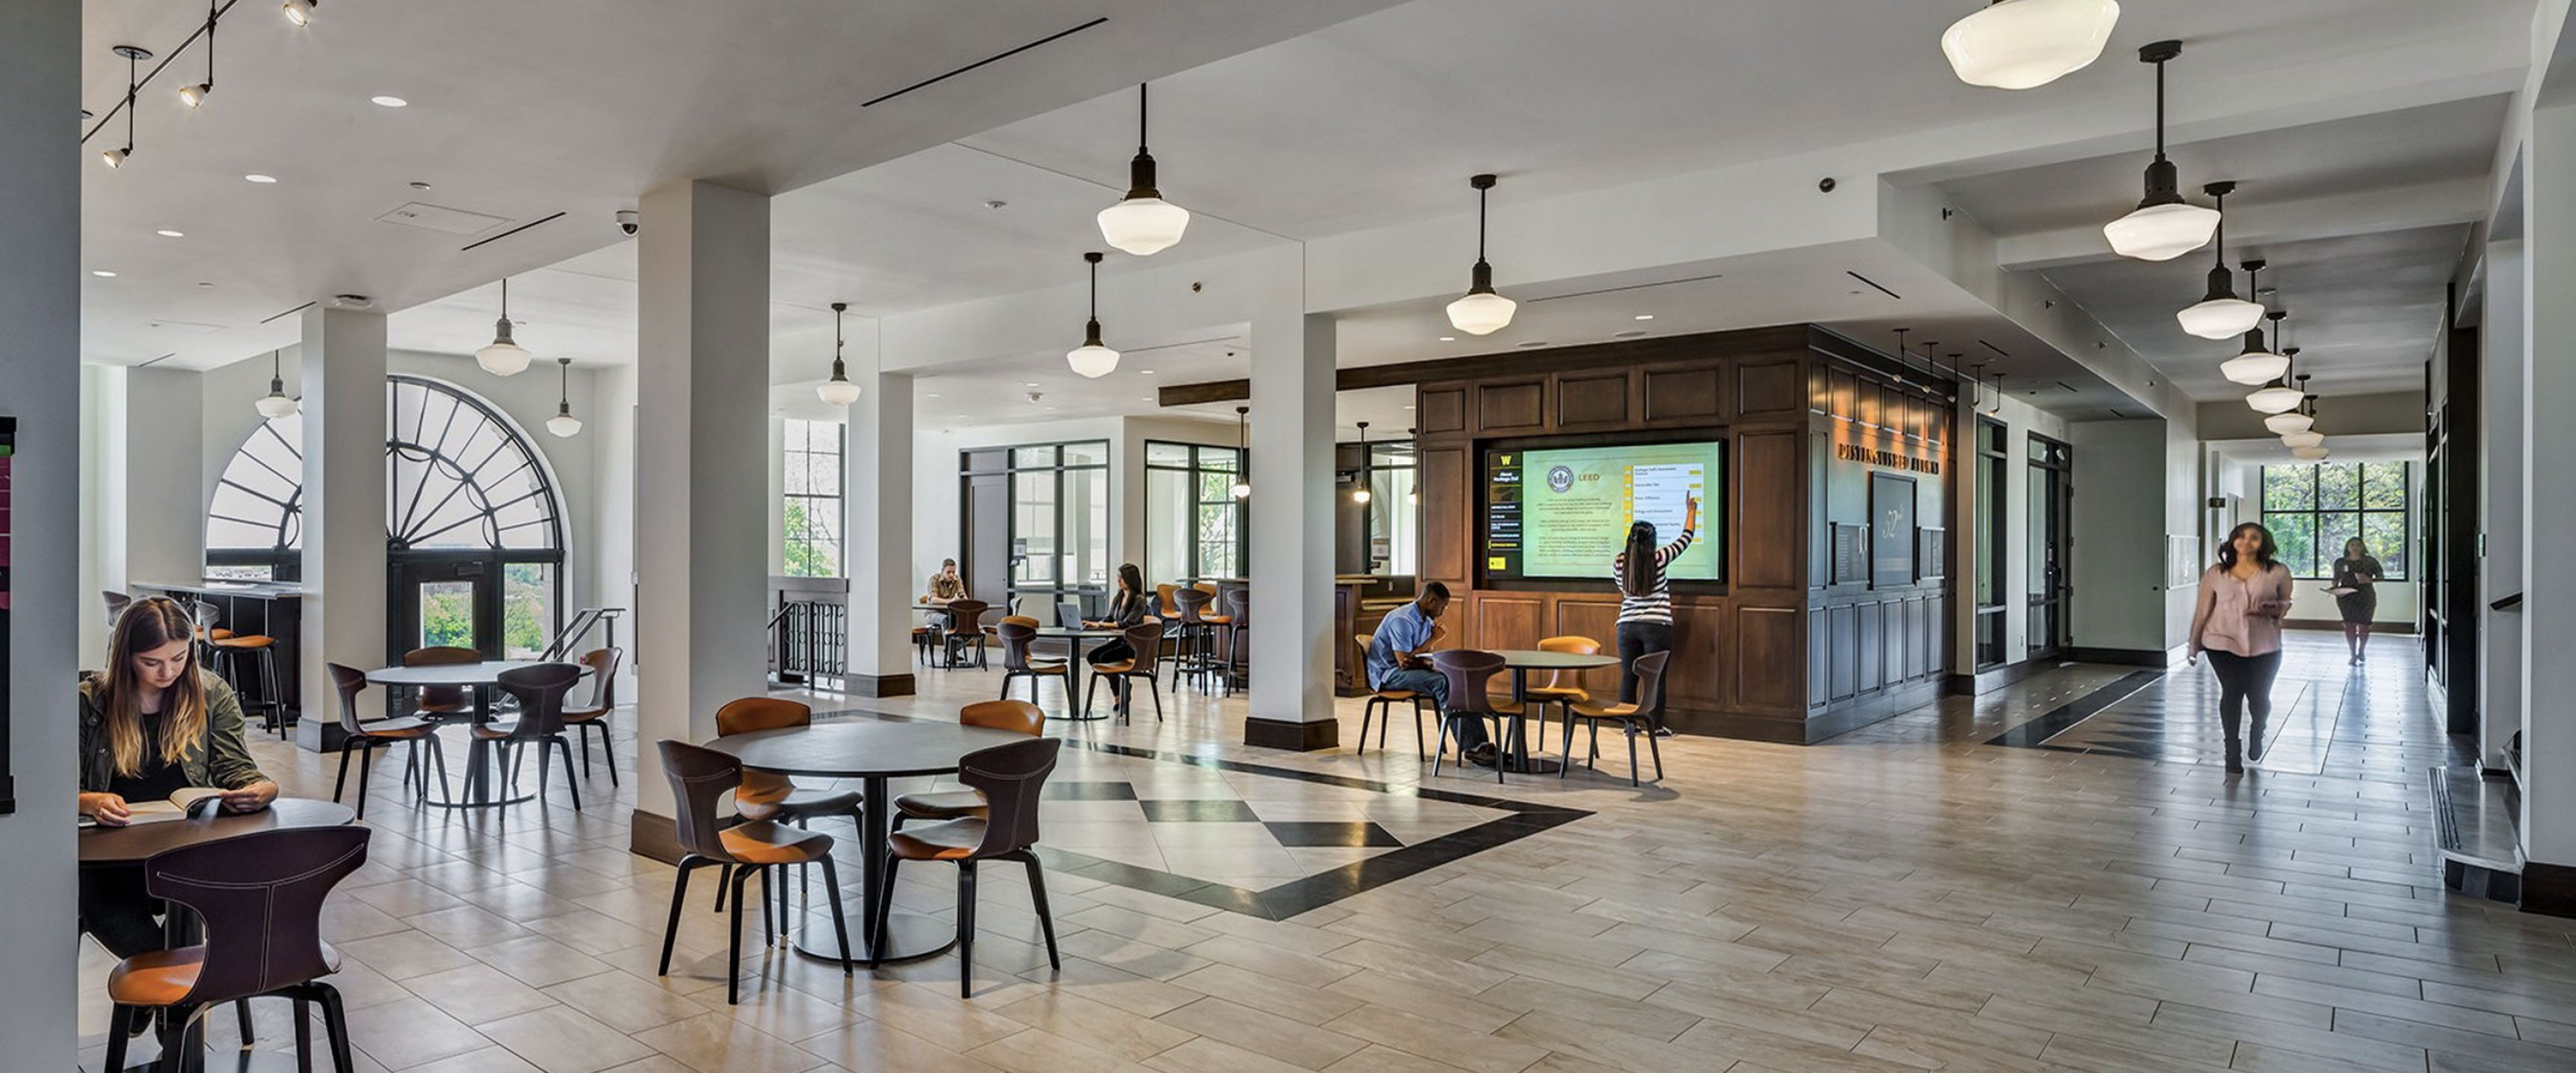 Interior of Heritage Hall lobby showing large open space and hardwood floors